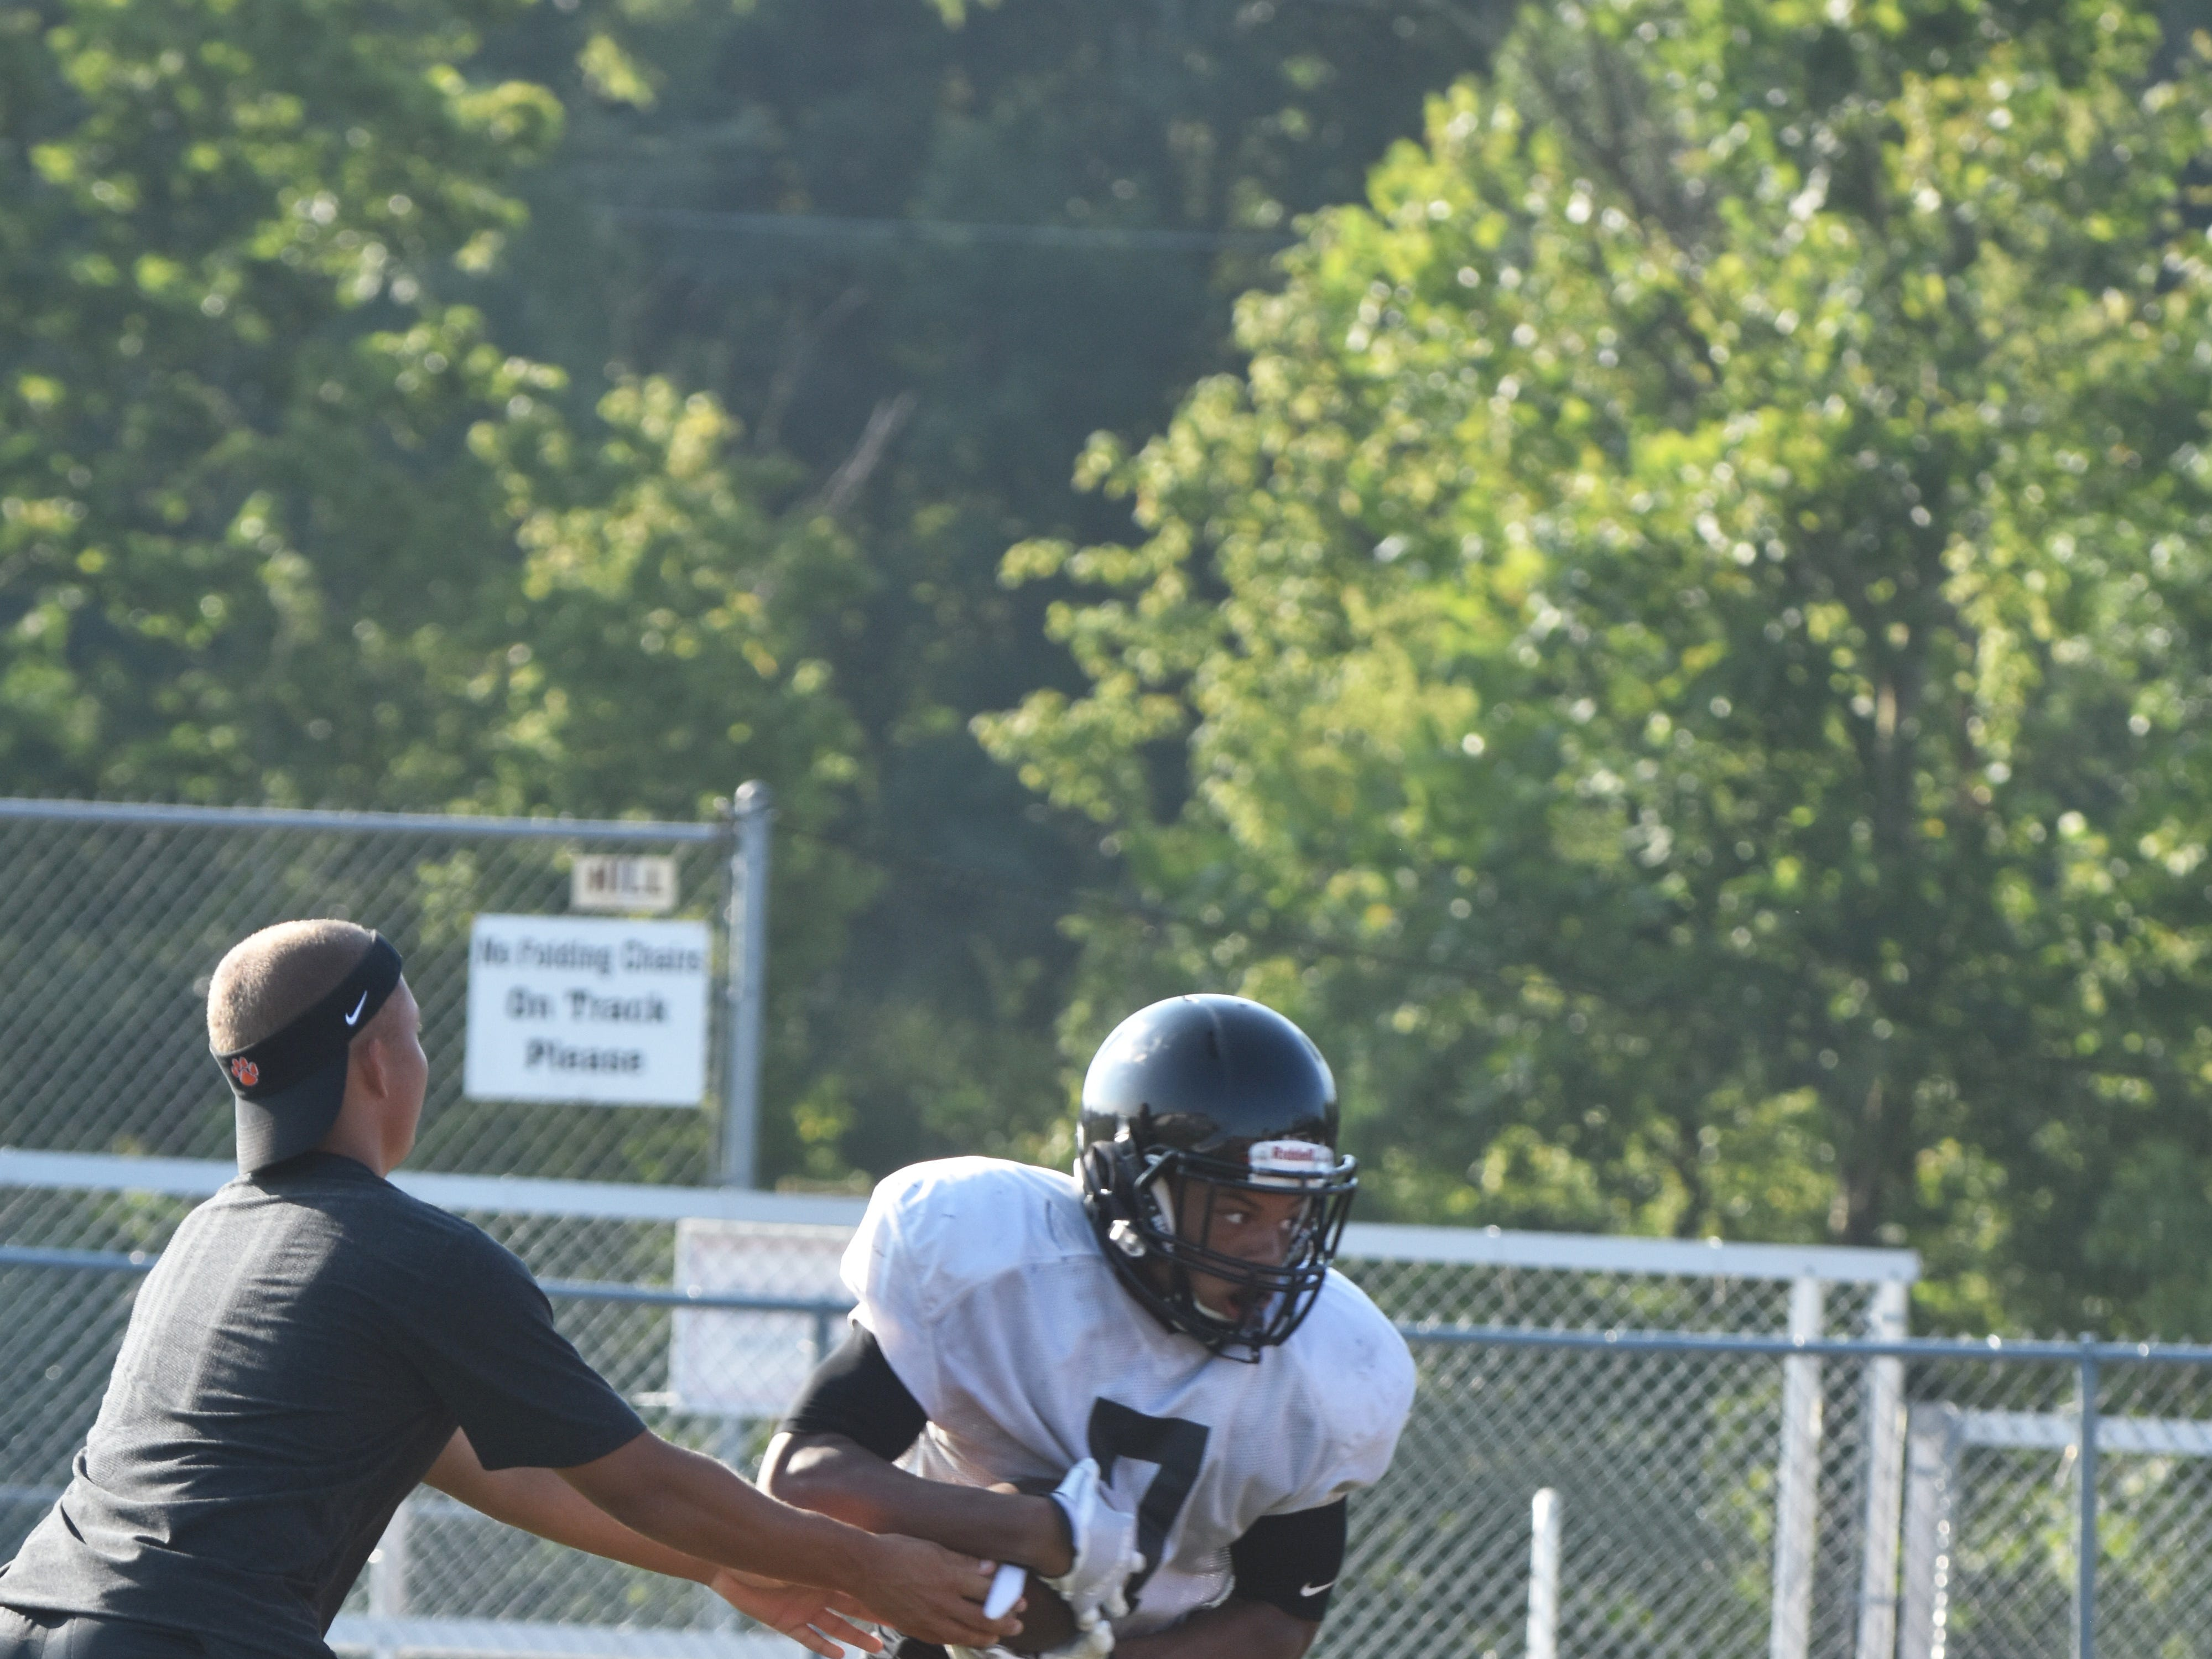 Powell football player Jordan Brown takes the hand off and heads down field during a recent practice session.